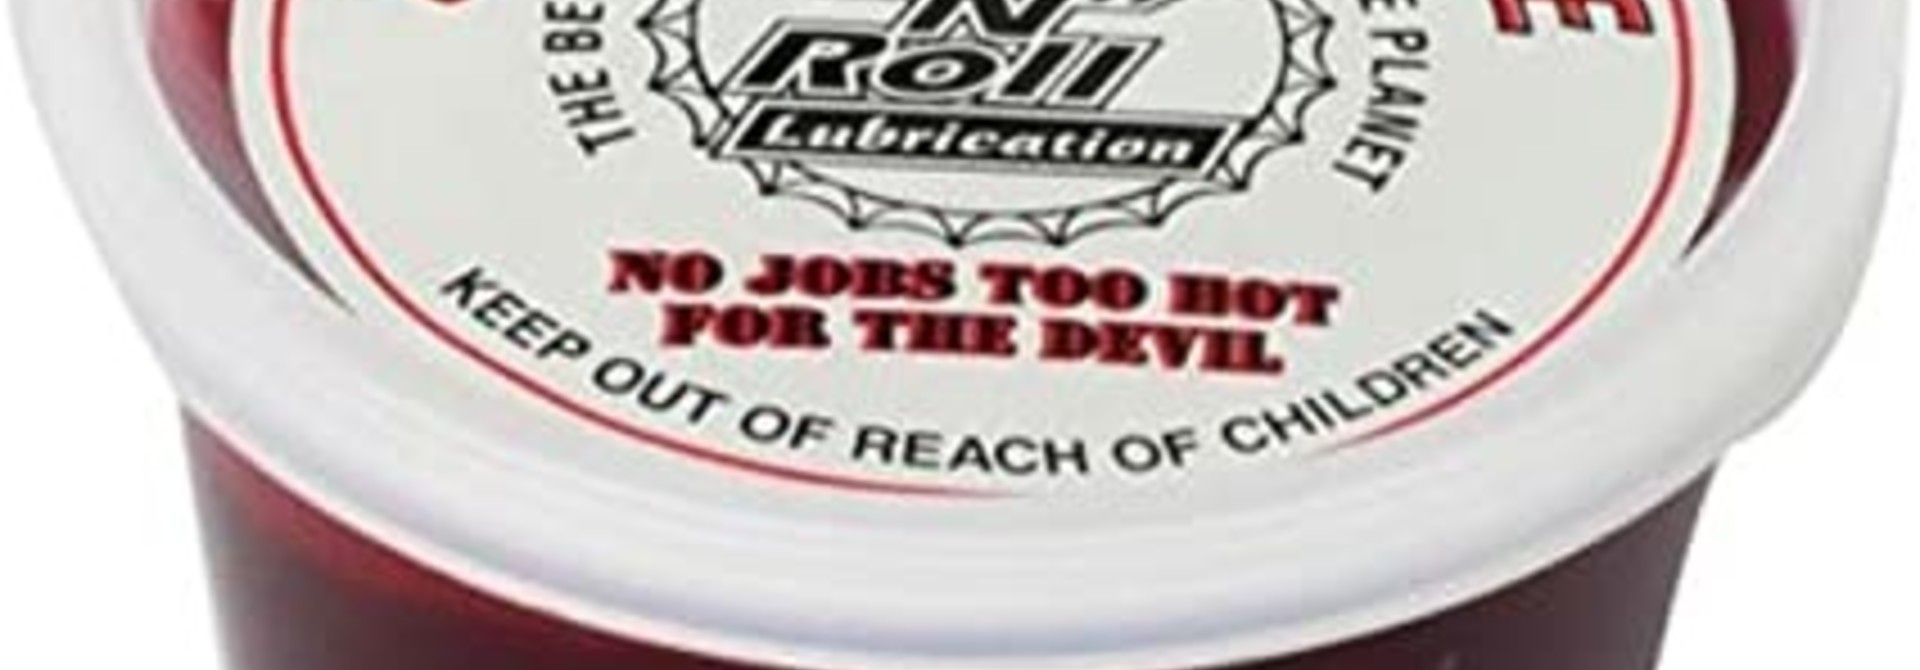 Rock N Roll Lubes Grease Red Devil 16oz.